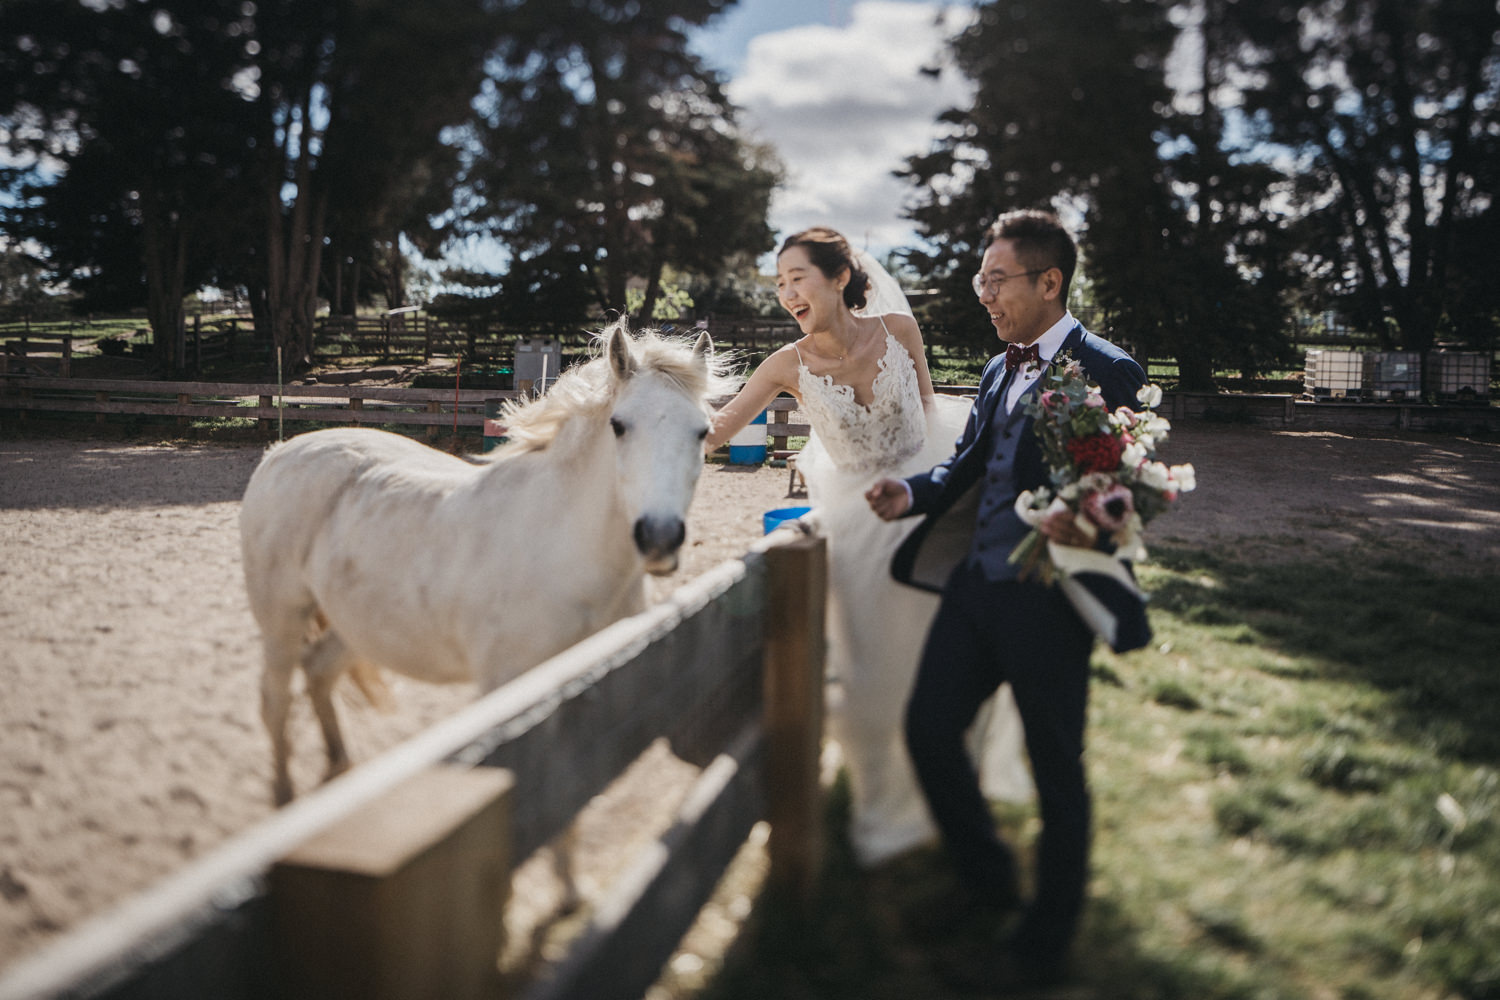 Melbourne_Wedding_Collingwood_Childrens_Farm_Anna_Taylor_065.jpg